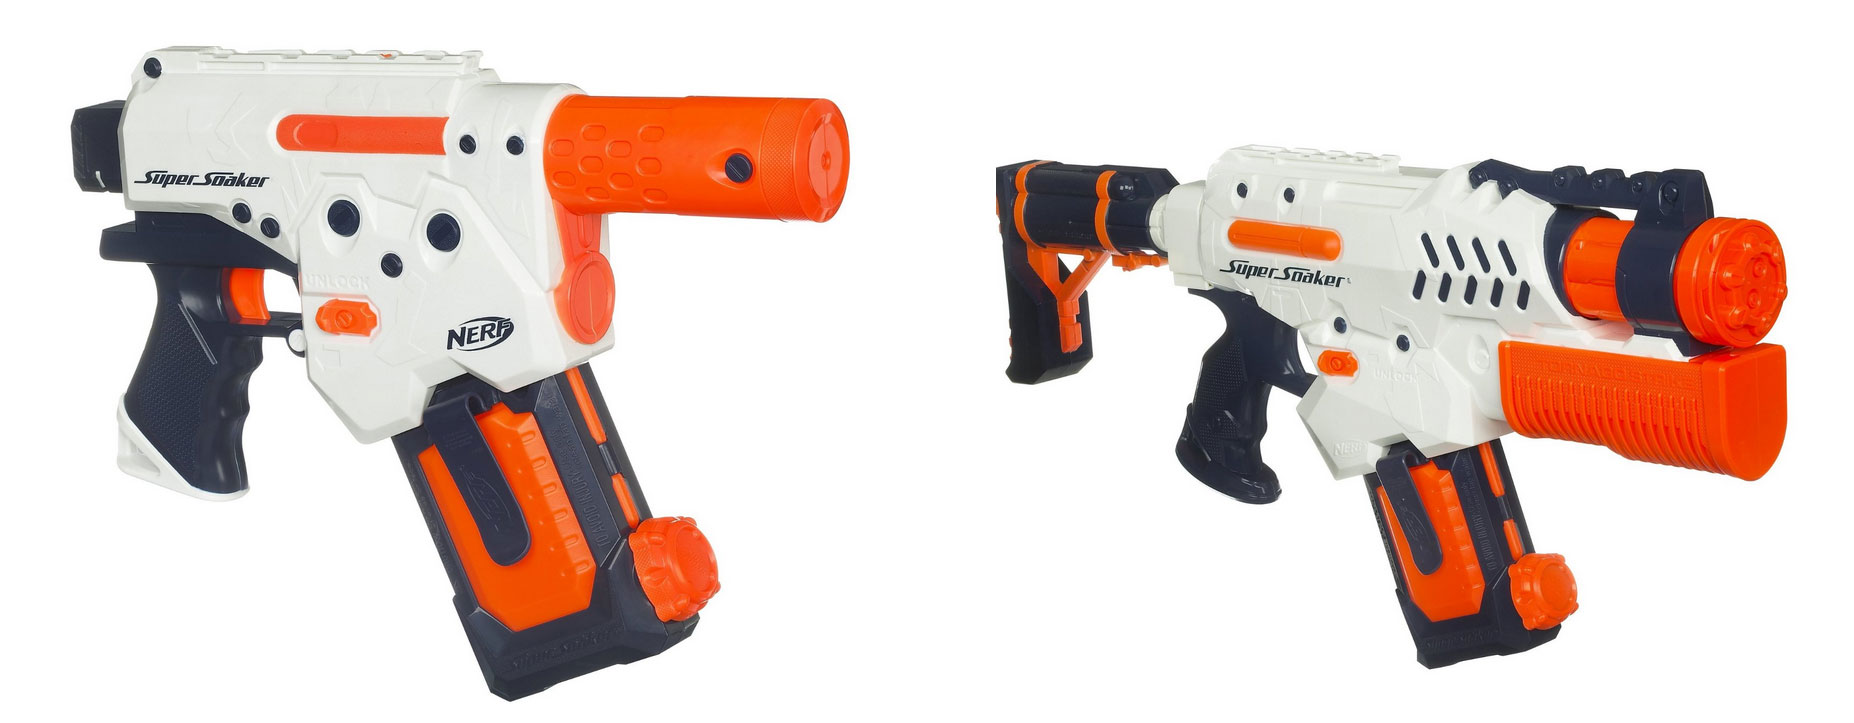 nerf squirt guns Amazon.com: Water Guns, Blasters & Soakers: Toys & Games.